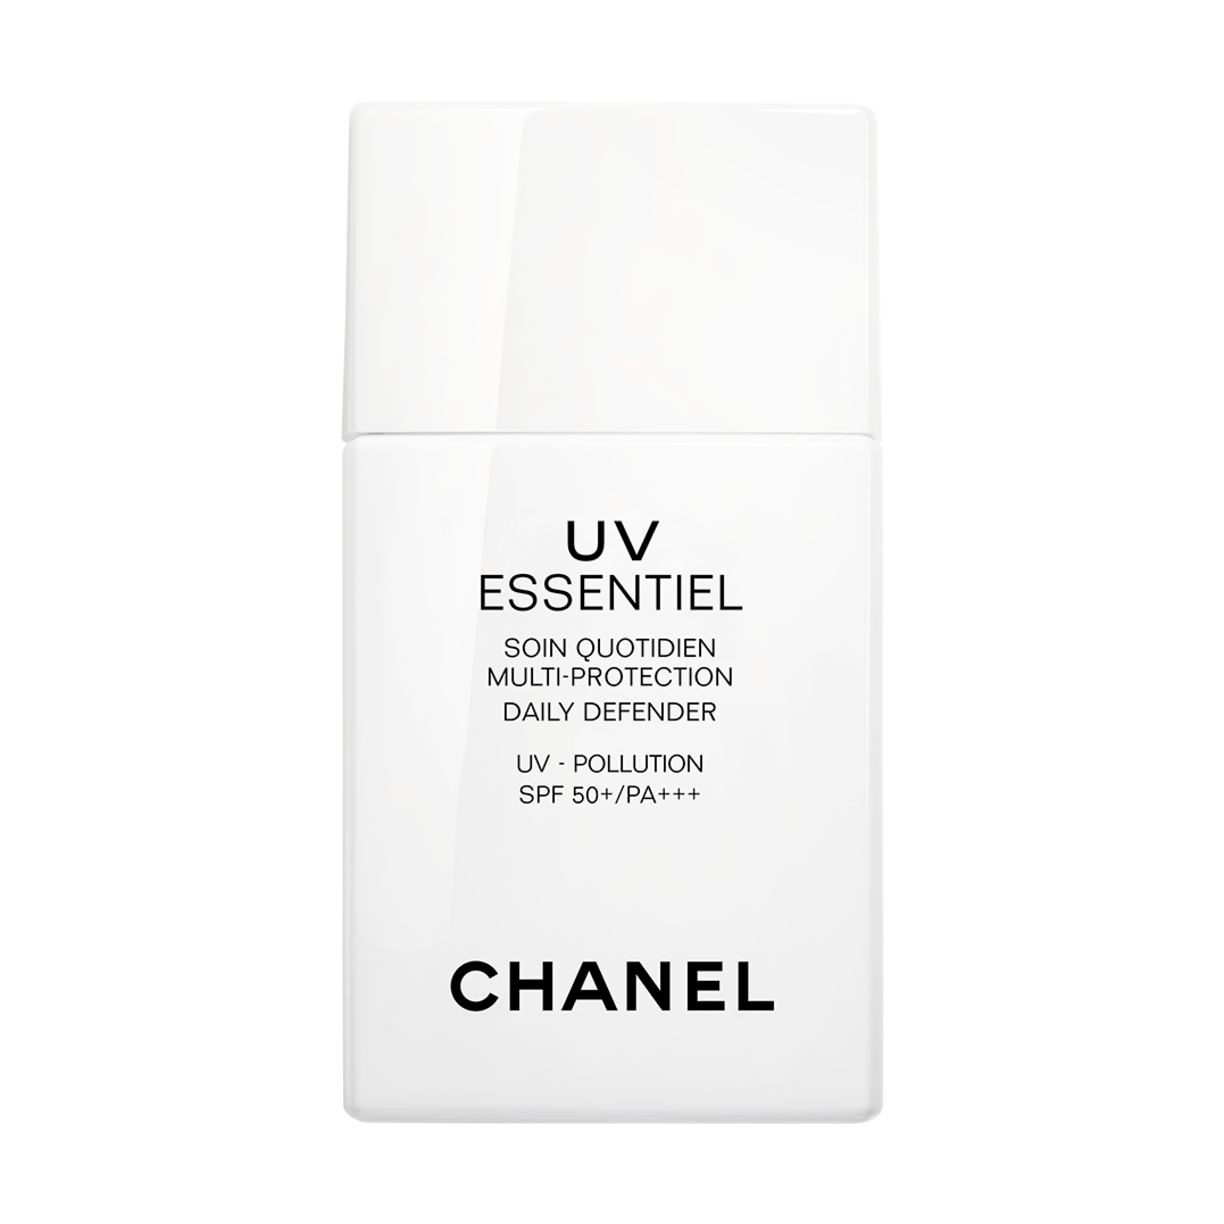 UV ESSENTIEL MULTI-PROTECTION DAILY DEFENDER UV - POLLUTION 30ml